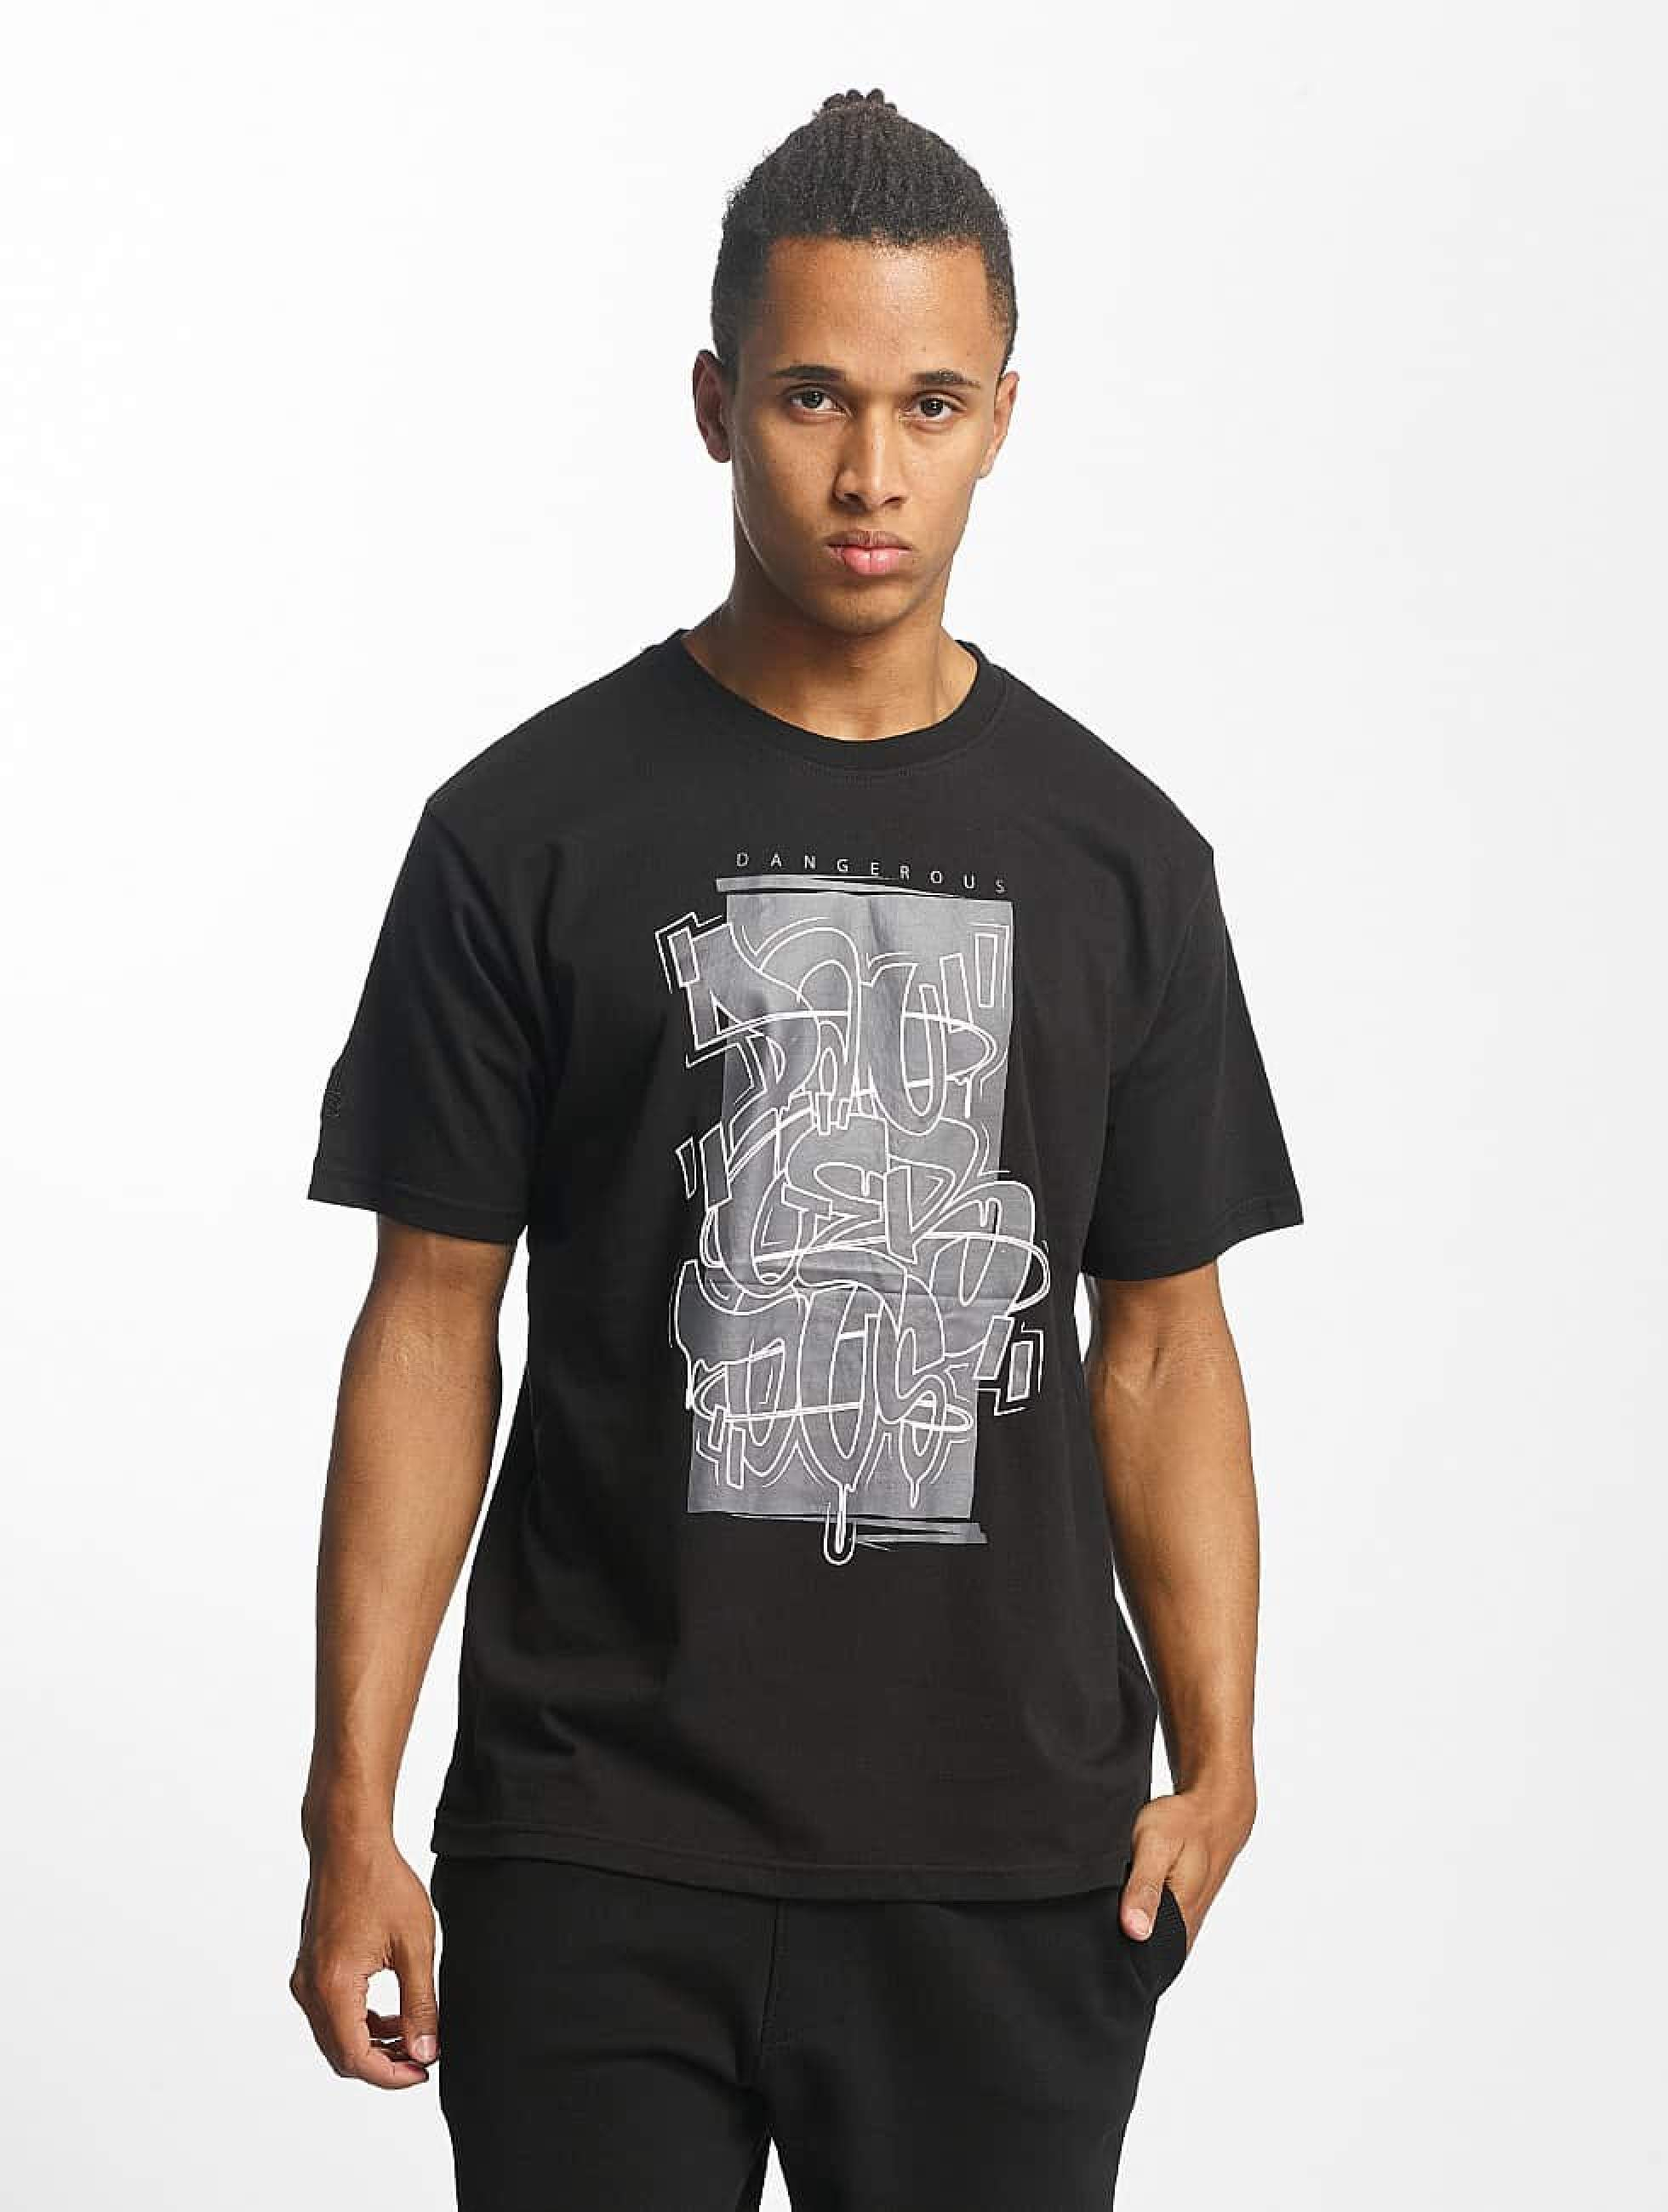 Dangerous DNGRS / T-Shirt Moik Style in black S